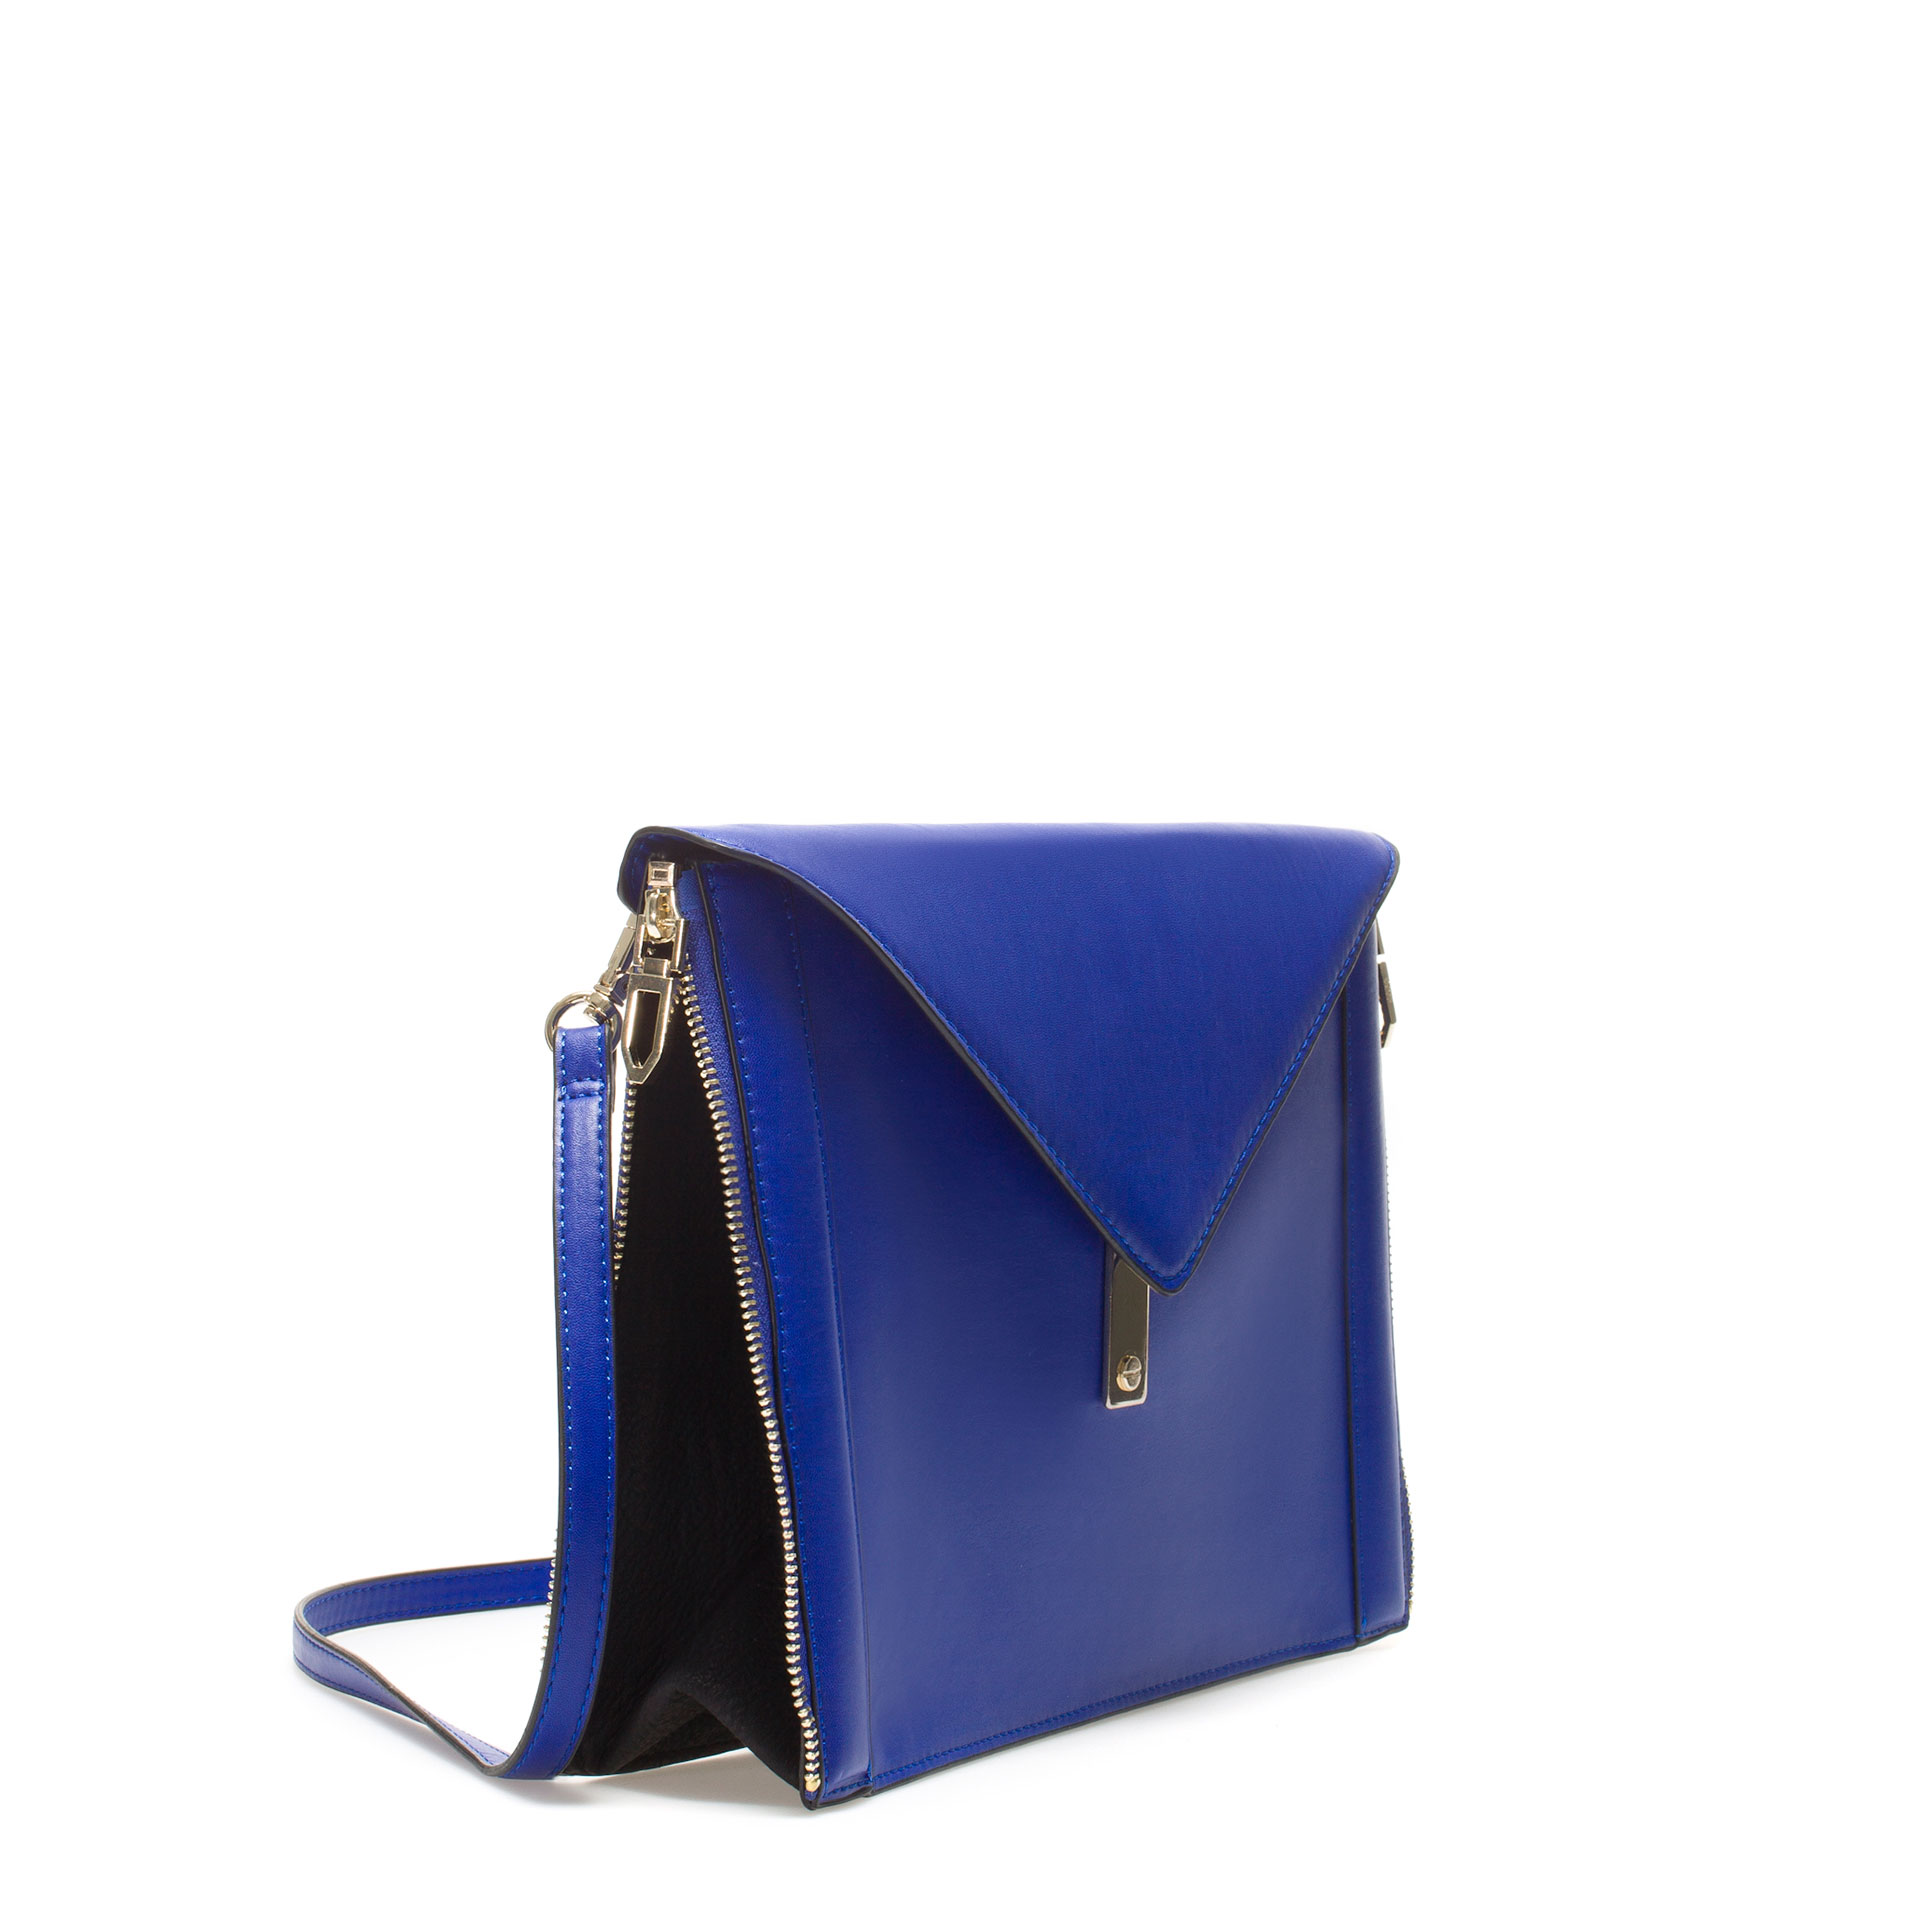 Zara Day Time Clutch Bag in Blue | Lyst